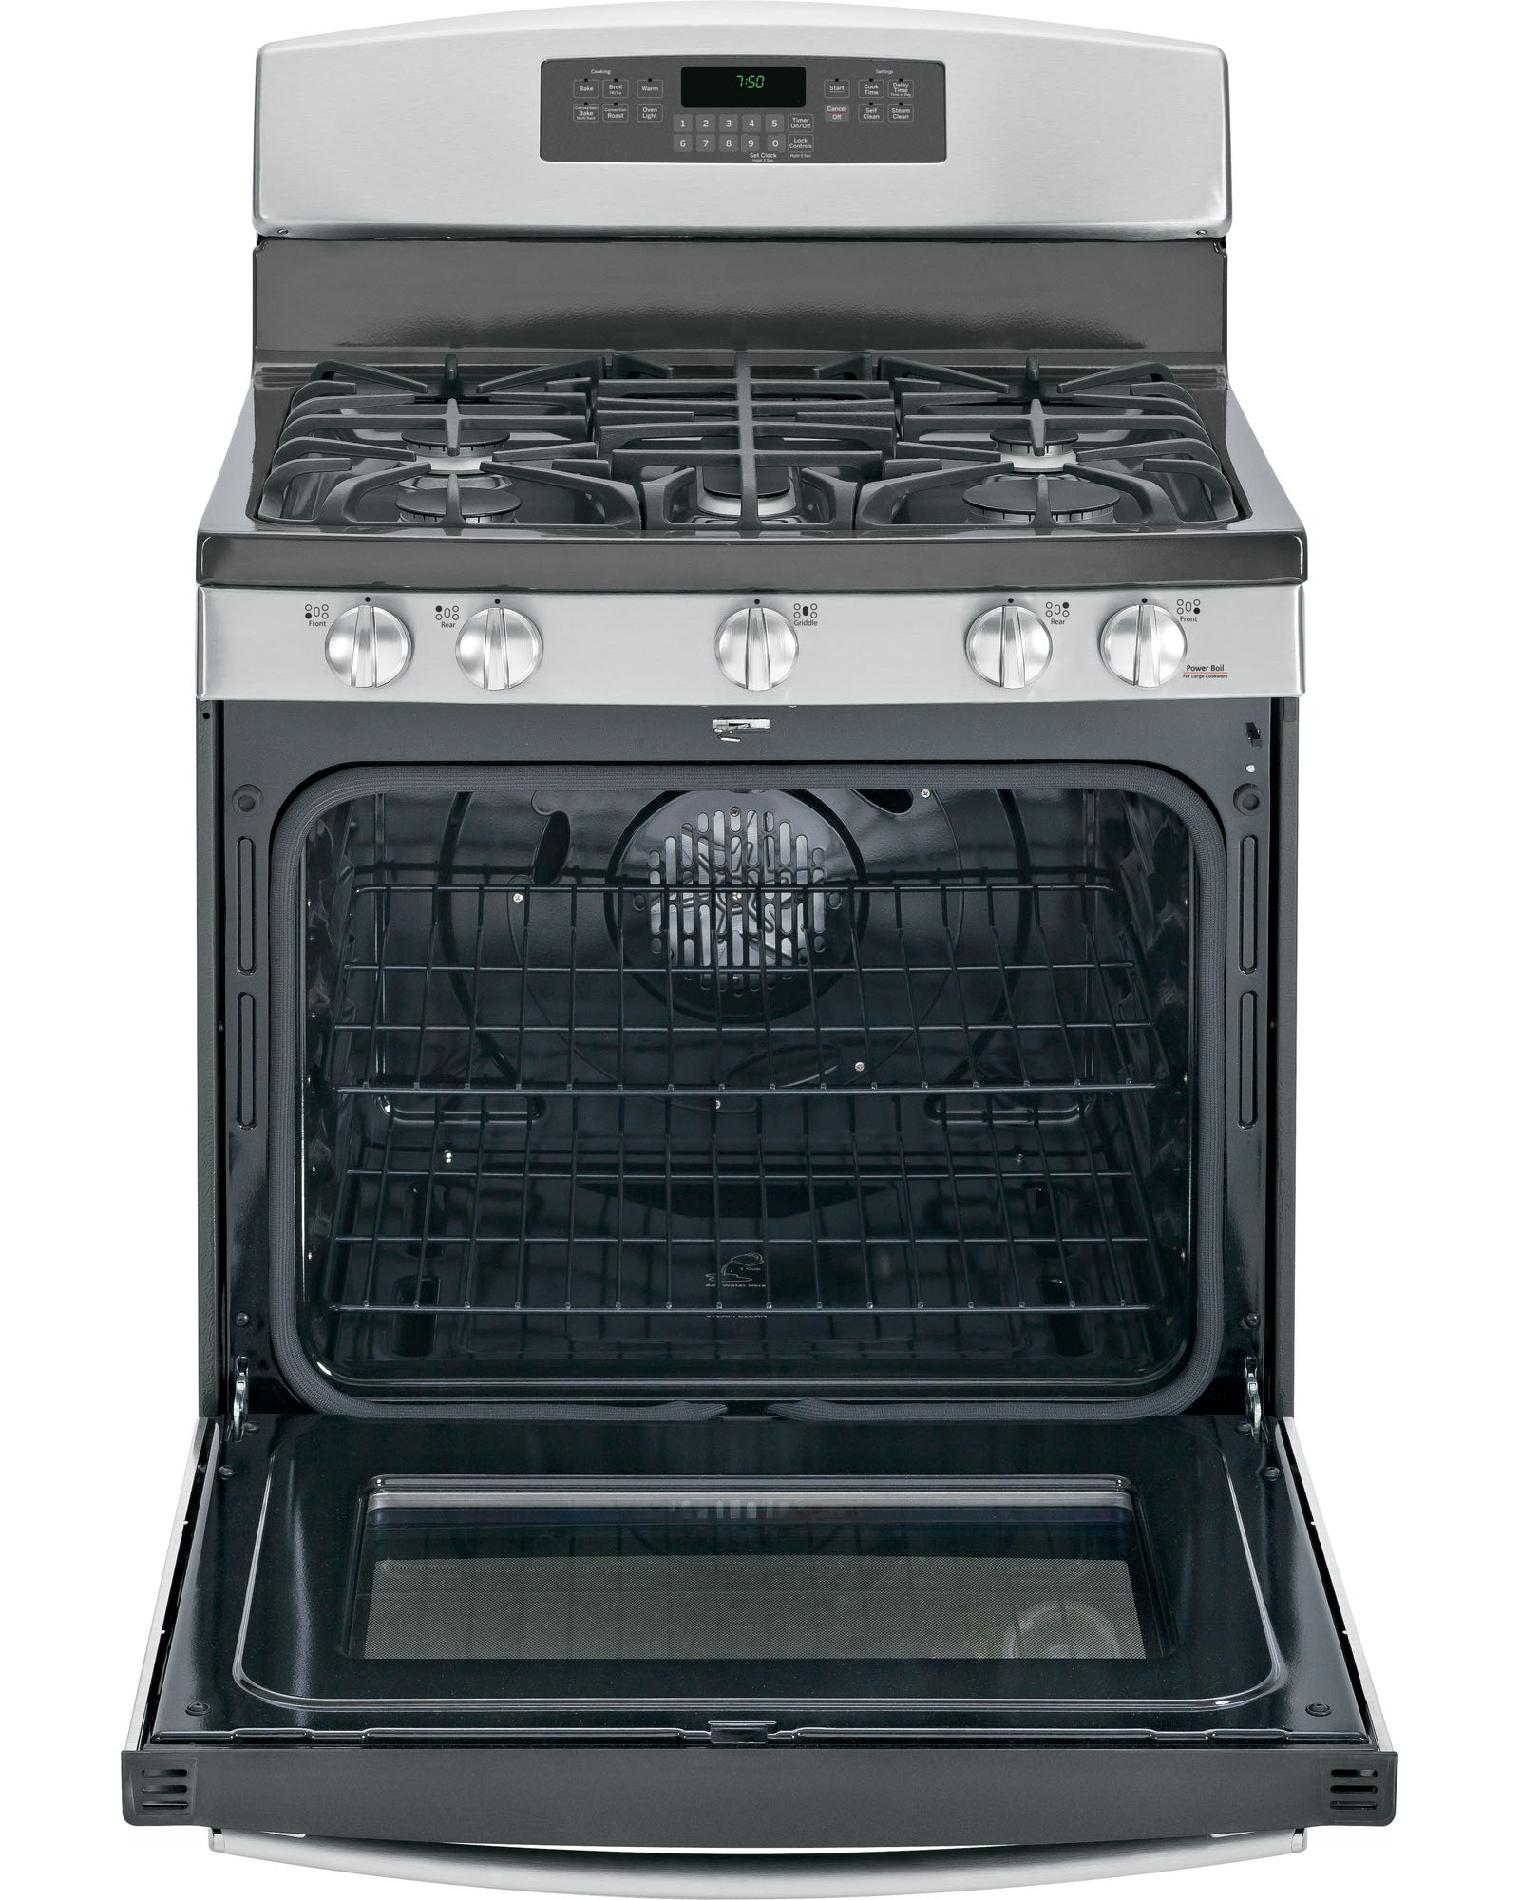 GE Appliances JGB750SEFSS 5.6 cu. ft. Gas Range w/ Convection - Stainless Steel